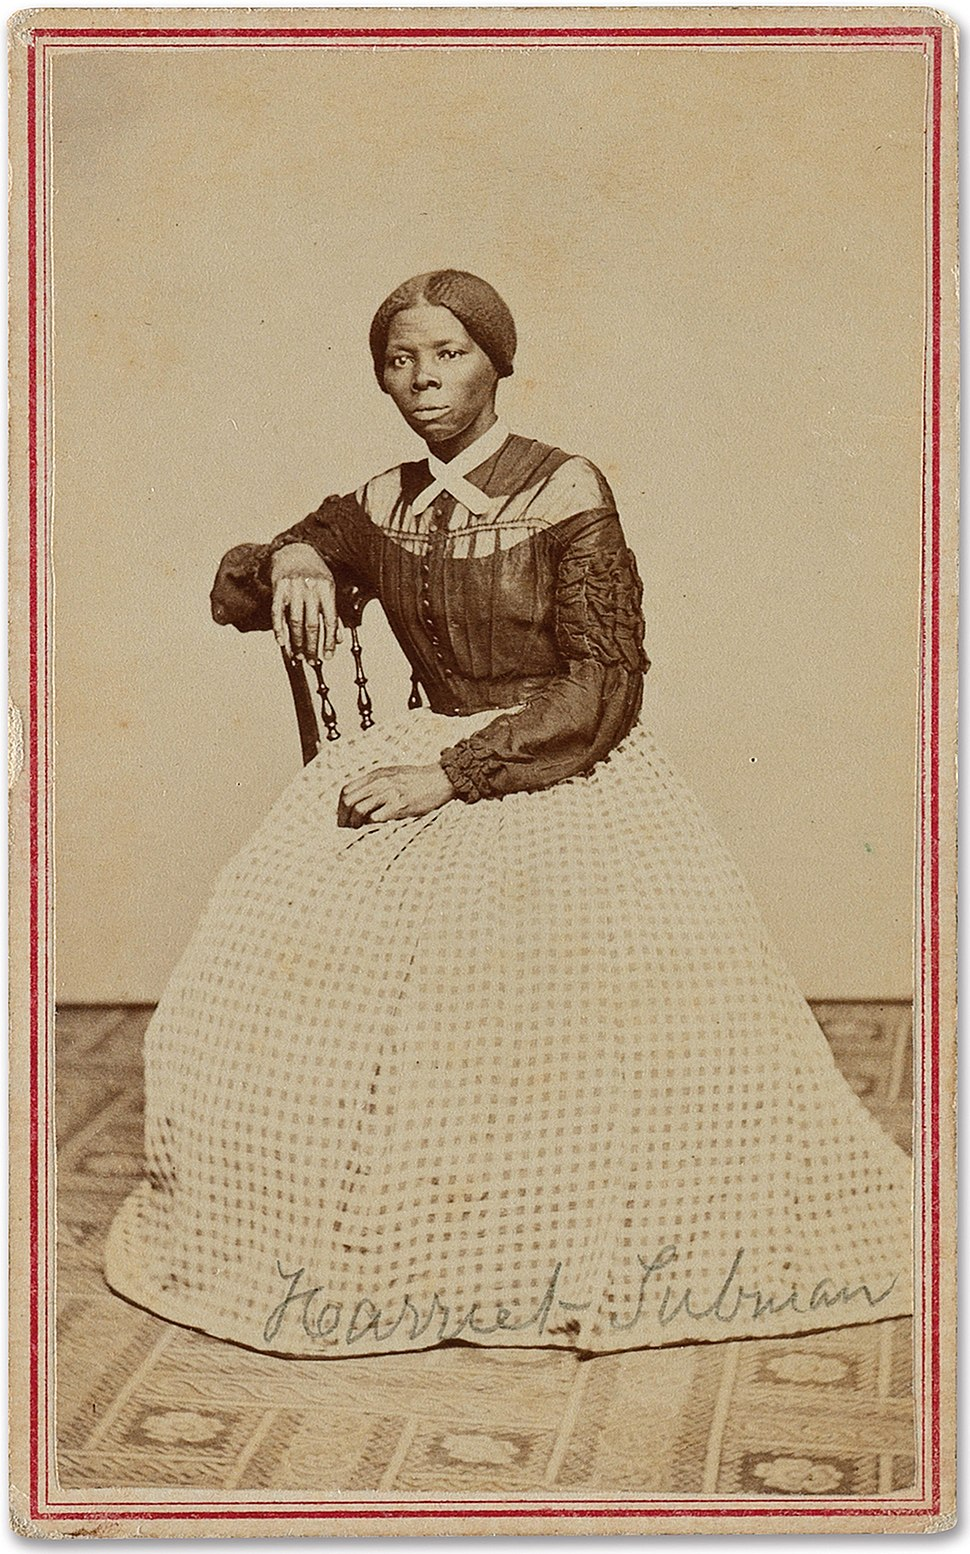 Harriet Tubman c1868-69